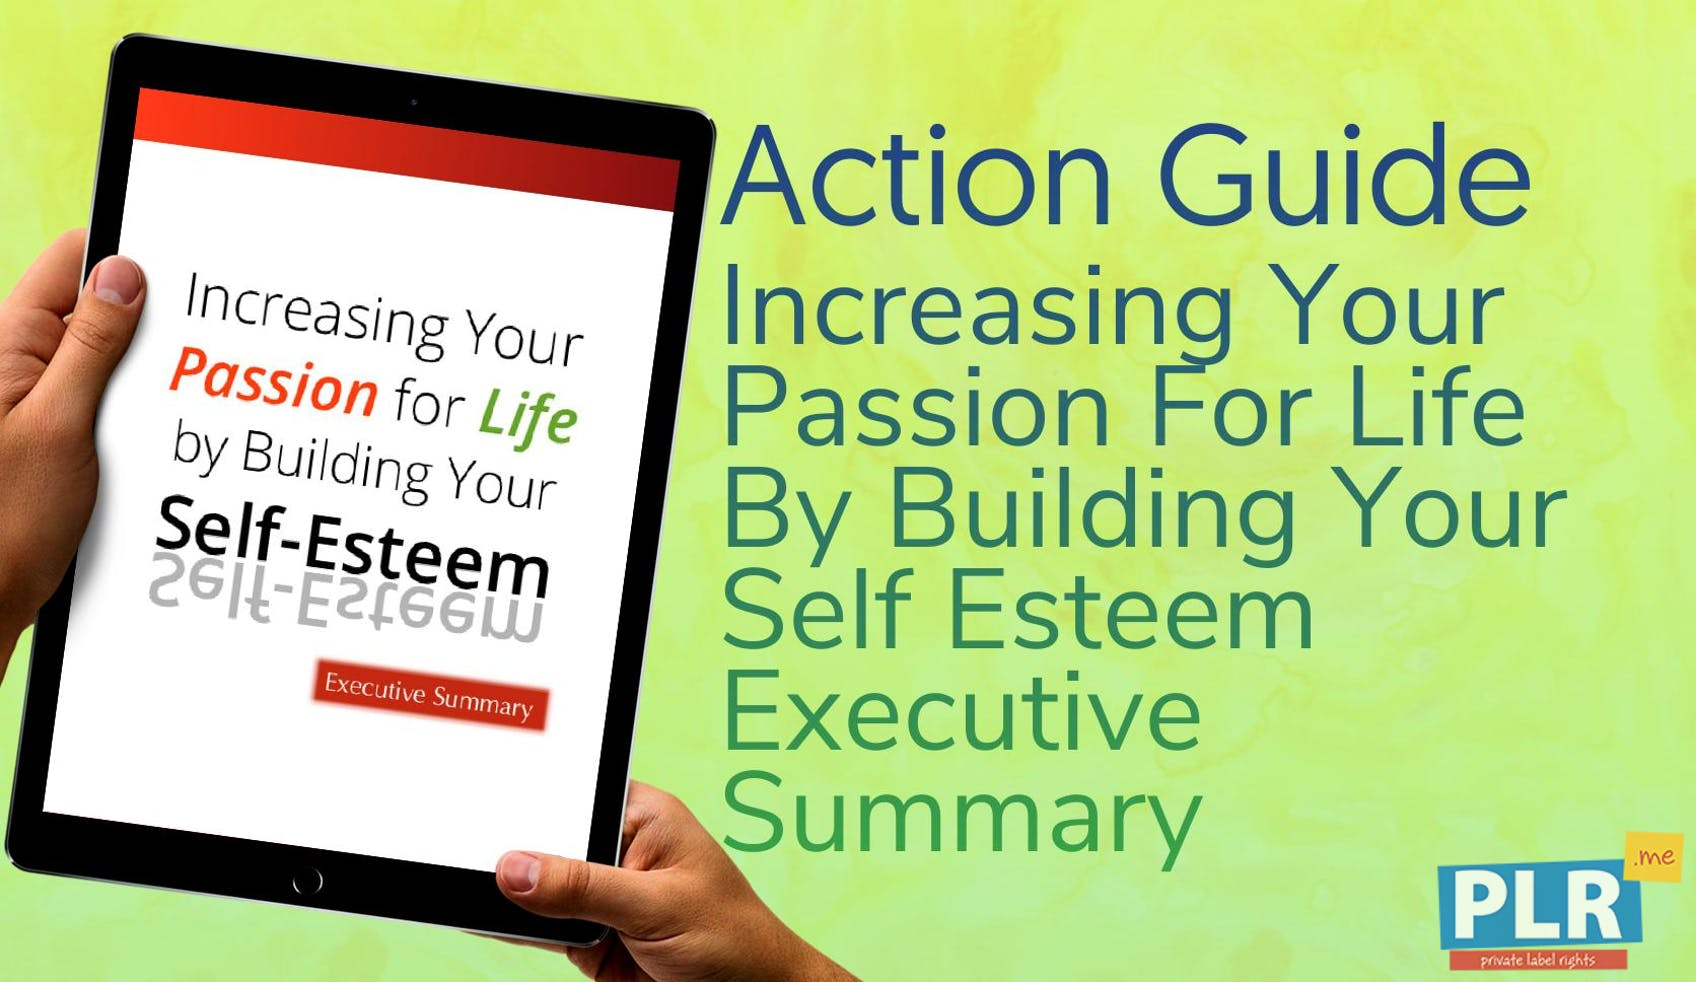 Increasing Your Passion For Life By Building Your Self Esteem Executive Summary